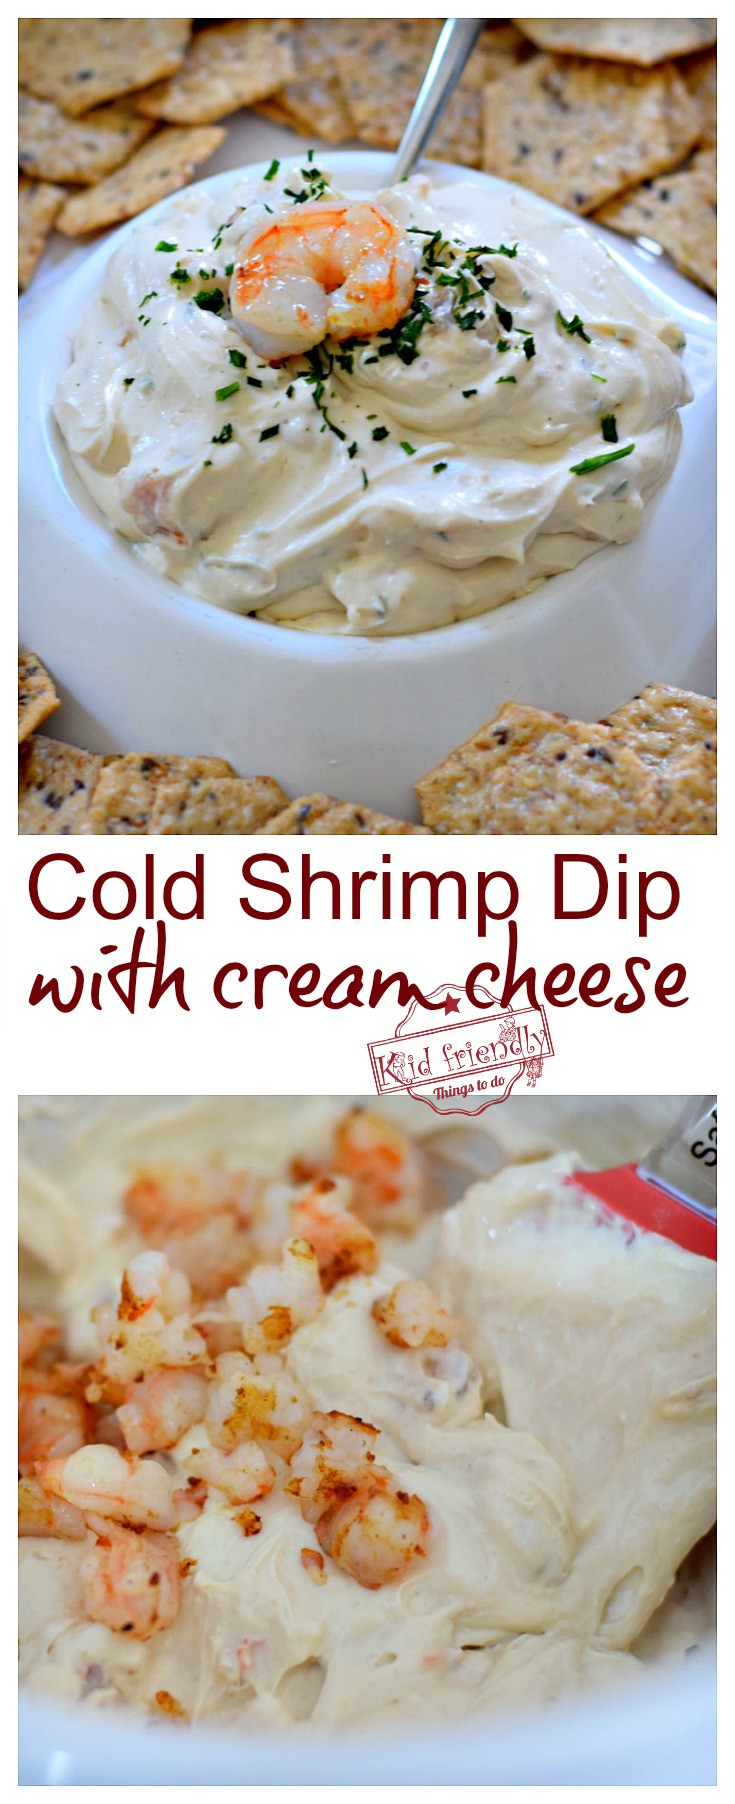 Cold Christmas Appetizers  The Best Cold Shrimp Dip Recipe With Cream Cheese